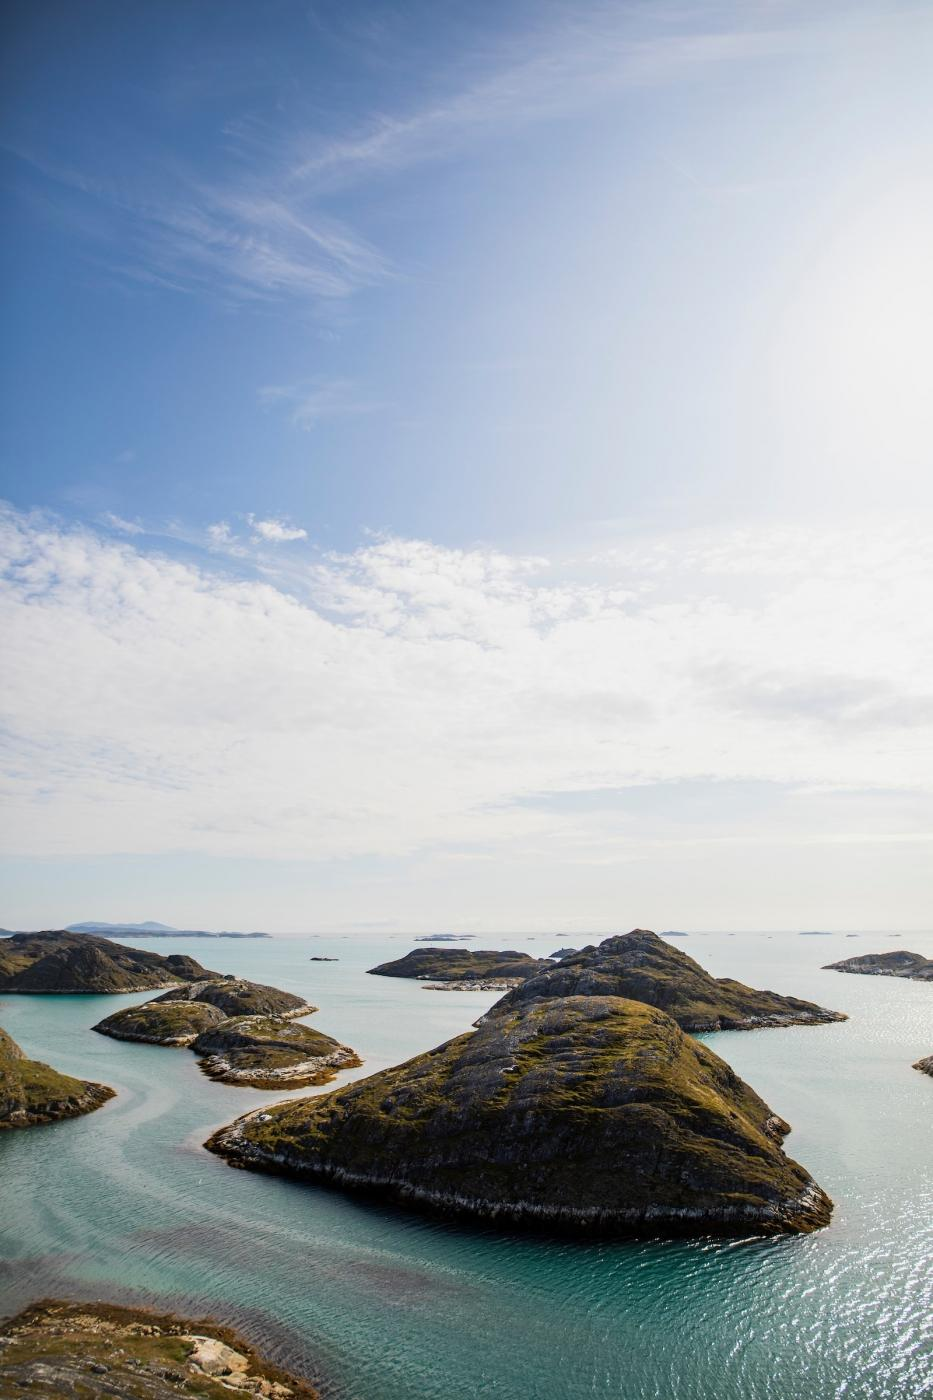 Islands near Paamiut. Photo by Aningaaq R Carlsen - Visit Greenland